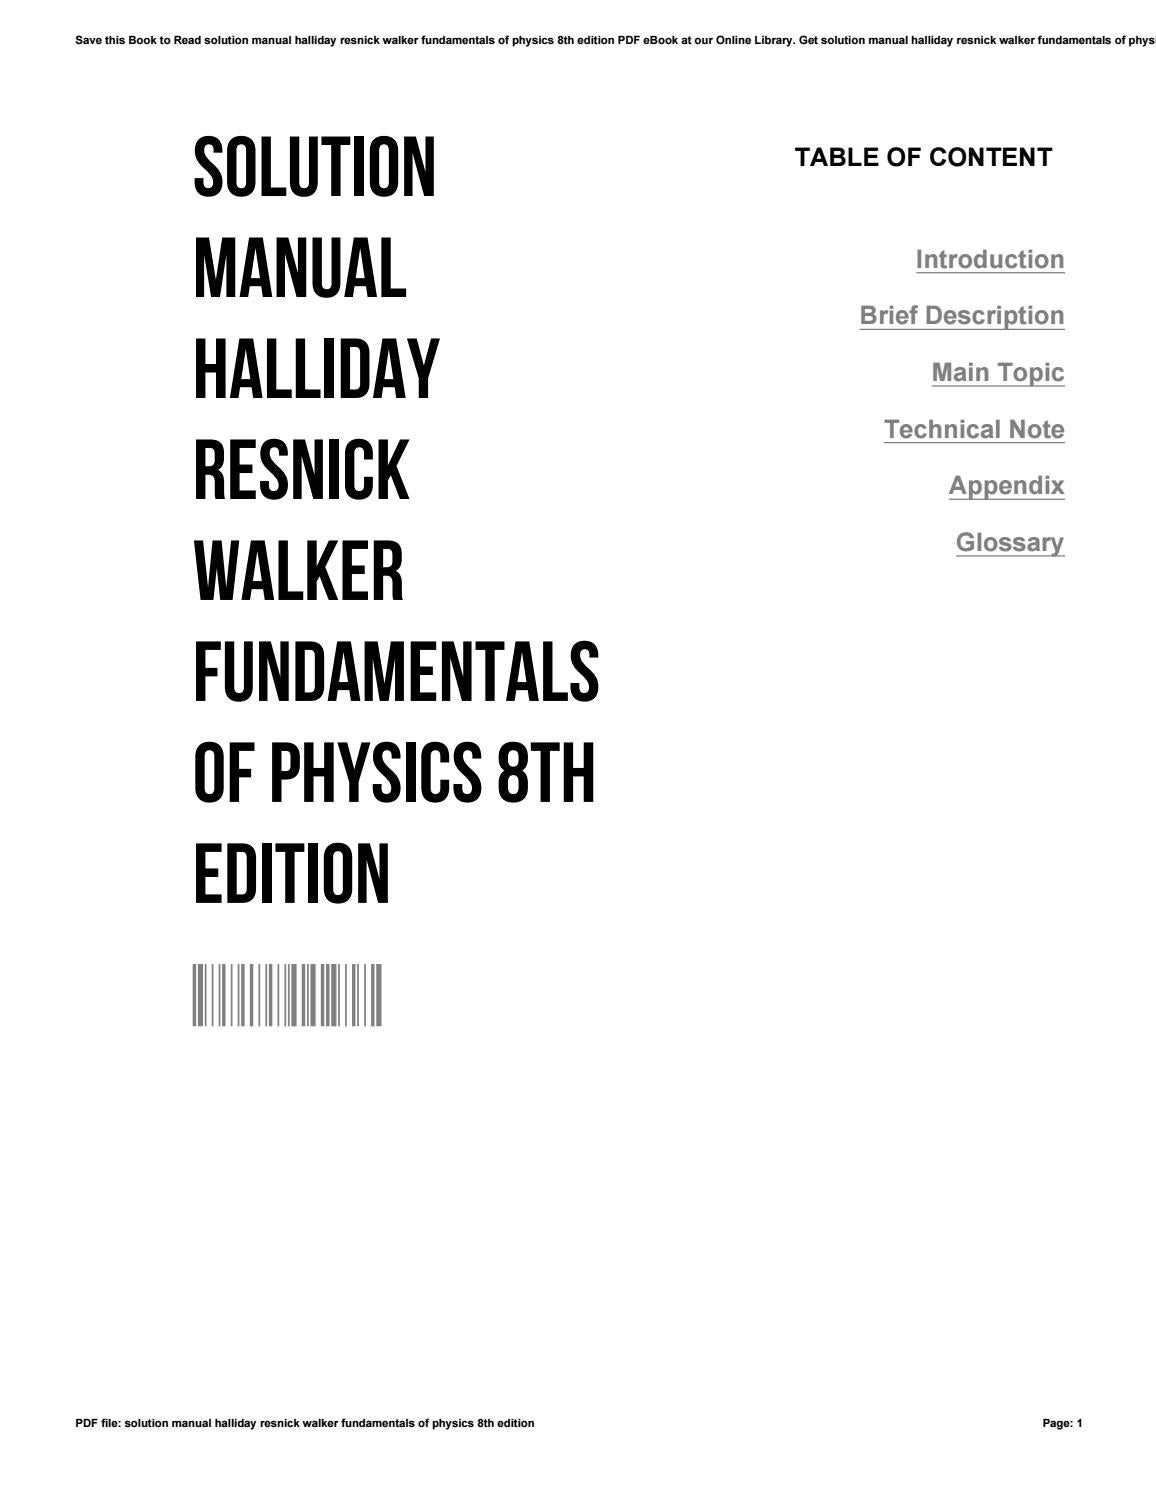 Solution manual halliday resnick walker fundamentals of